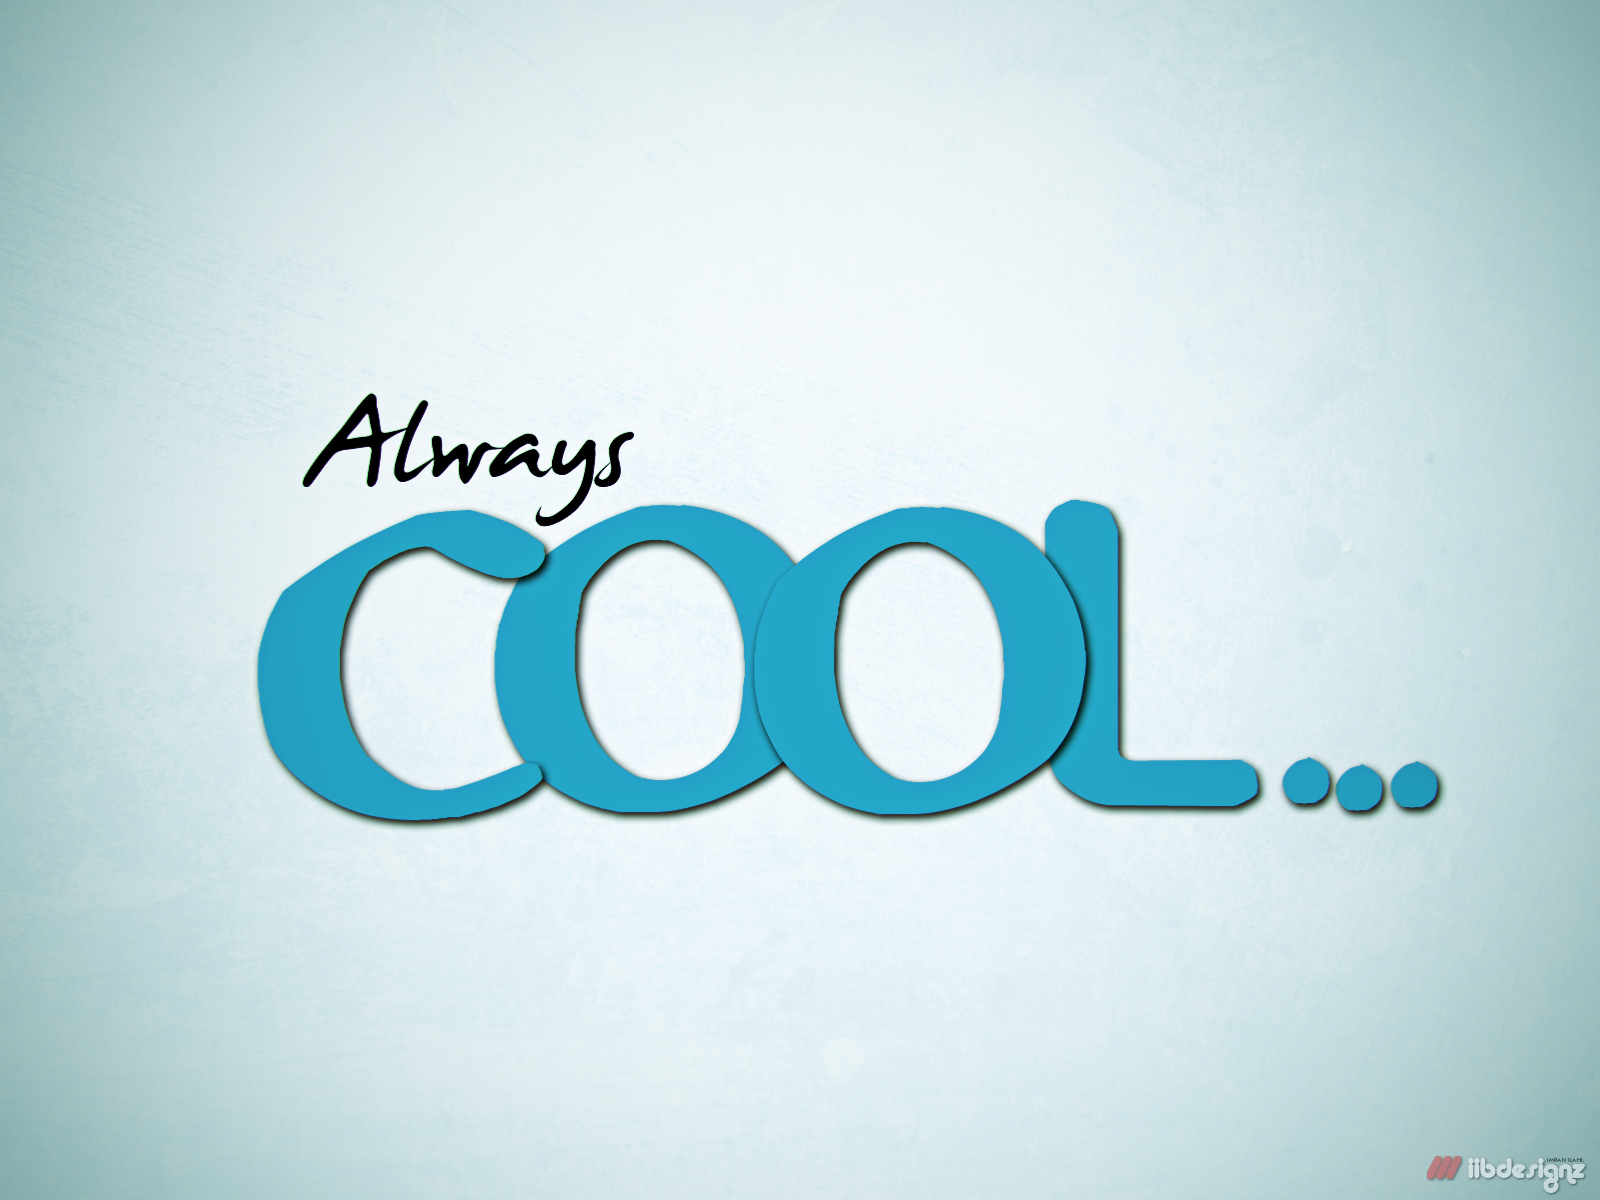 Your Cool